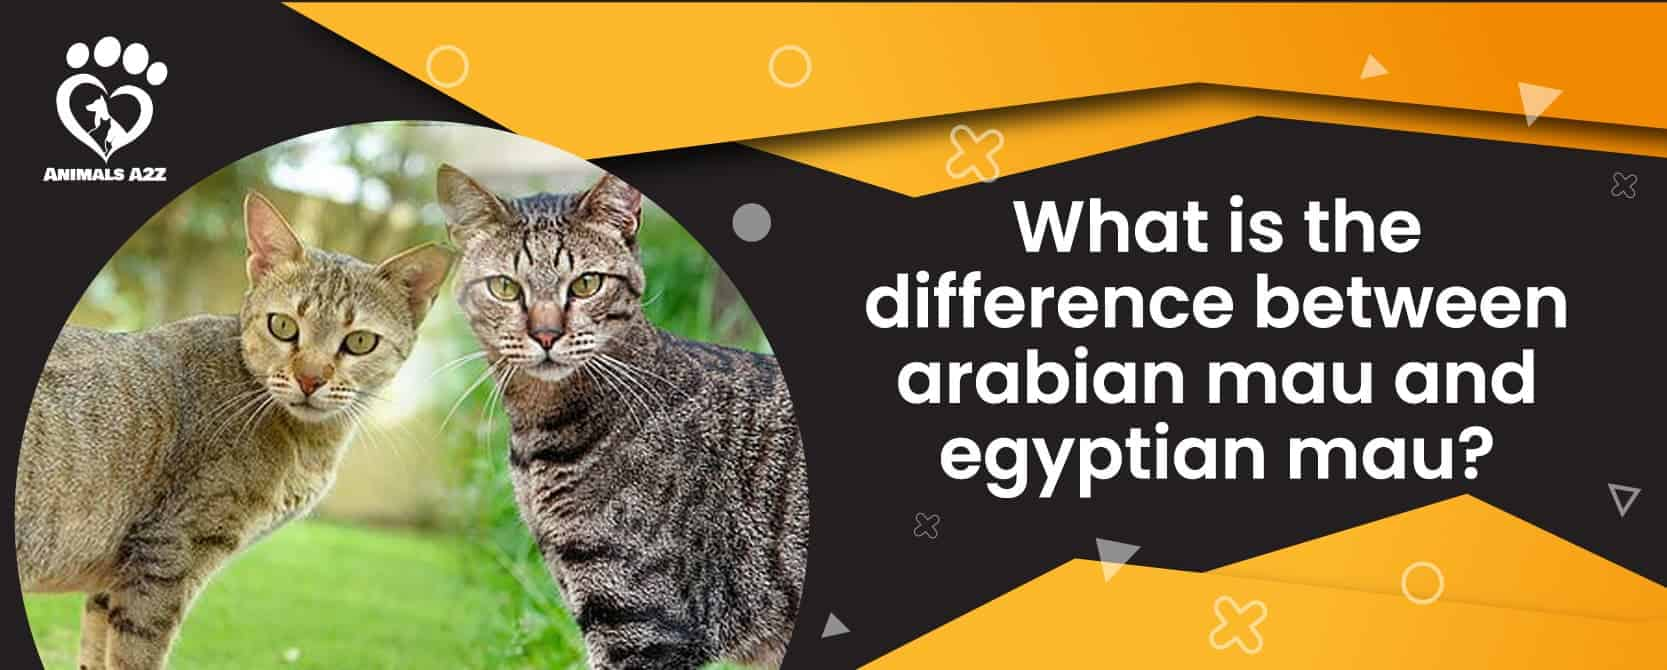 What is the difference between arabian mau and egyptian mau